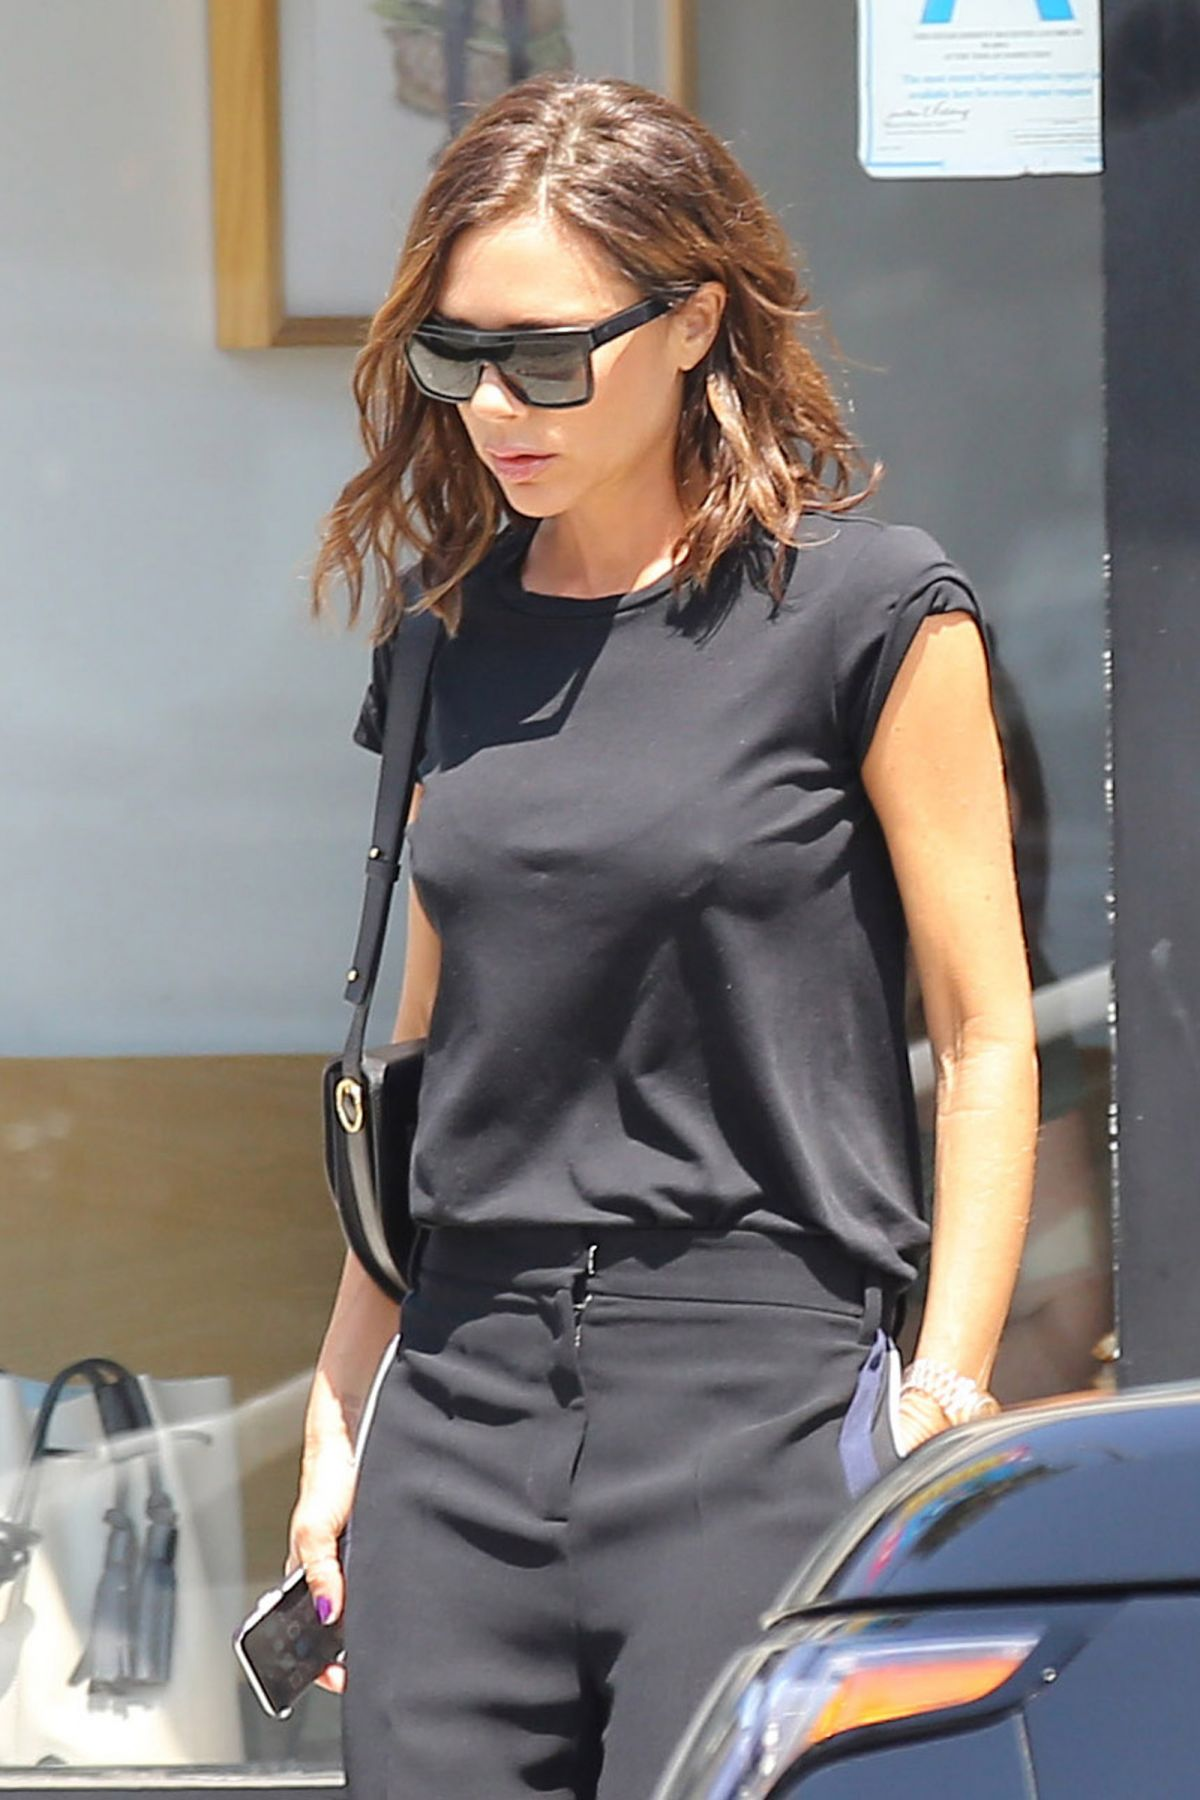 VICTORIA BECKHAM Out and About in Los Angeles 08/21/2016